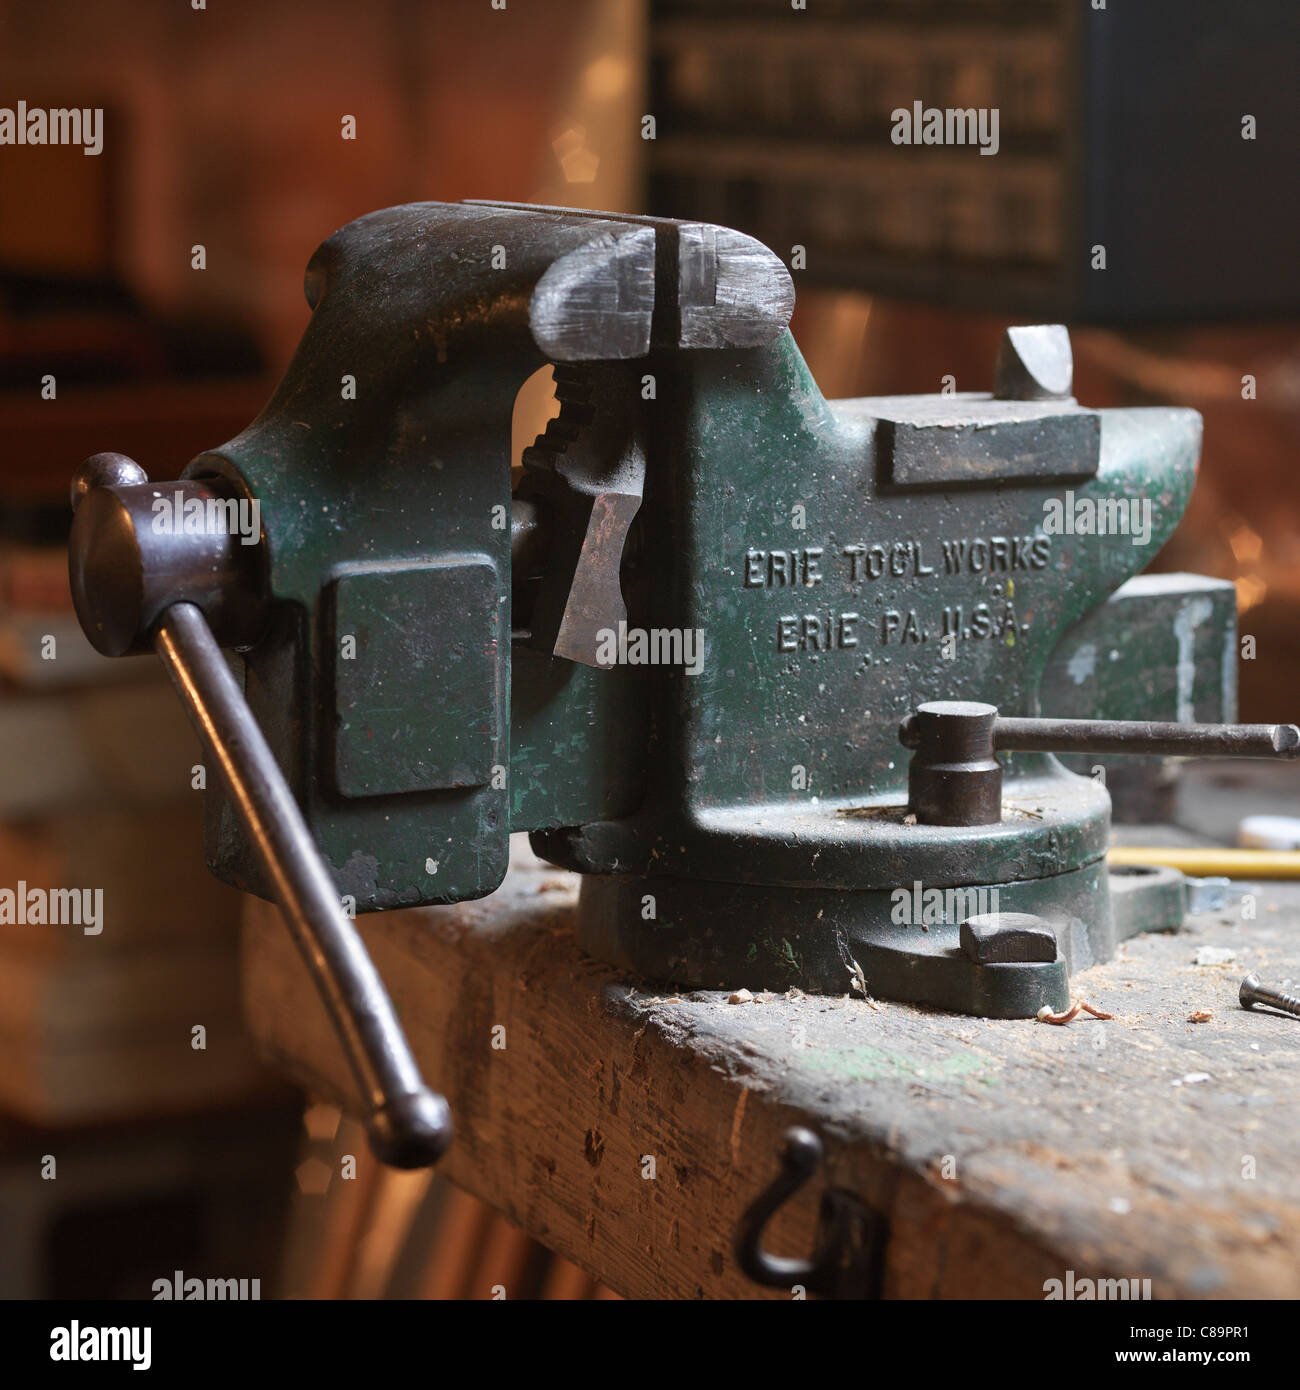 Vice or Vise - Stock Image